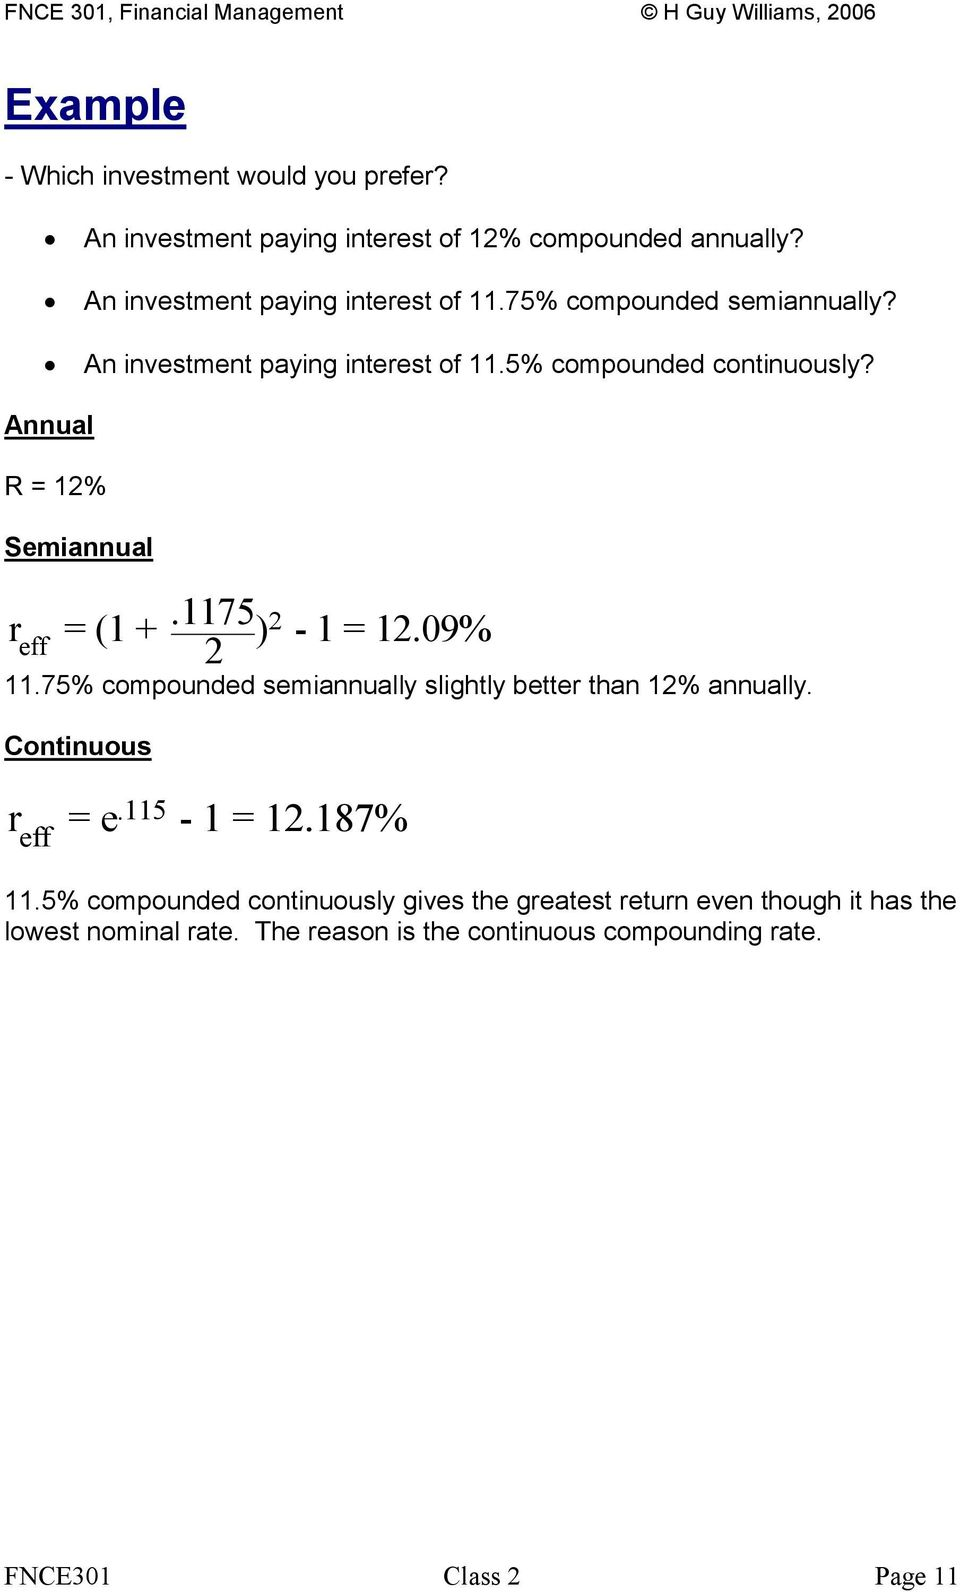 1175 2 r = (1 + ) 2-1 = 12.09% eff 11.75% compounded semiannually slightly better than 12% annually. Continuous r = e.115-1 = 12.